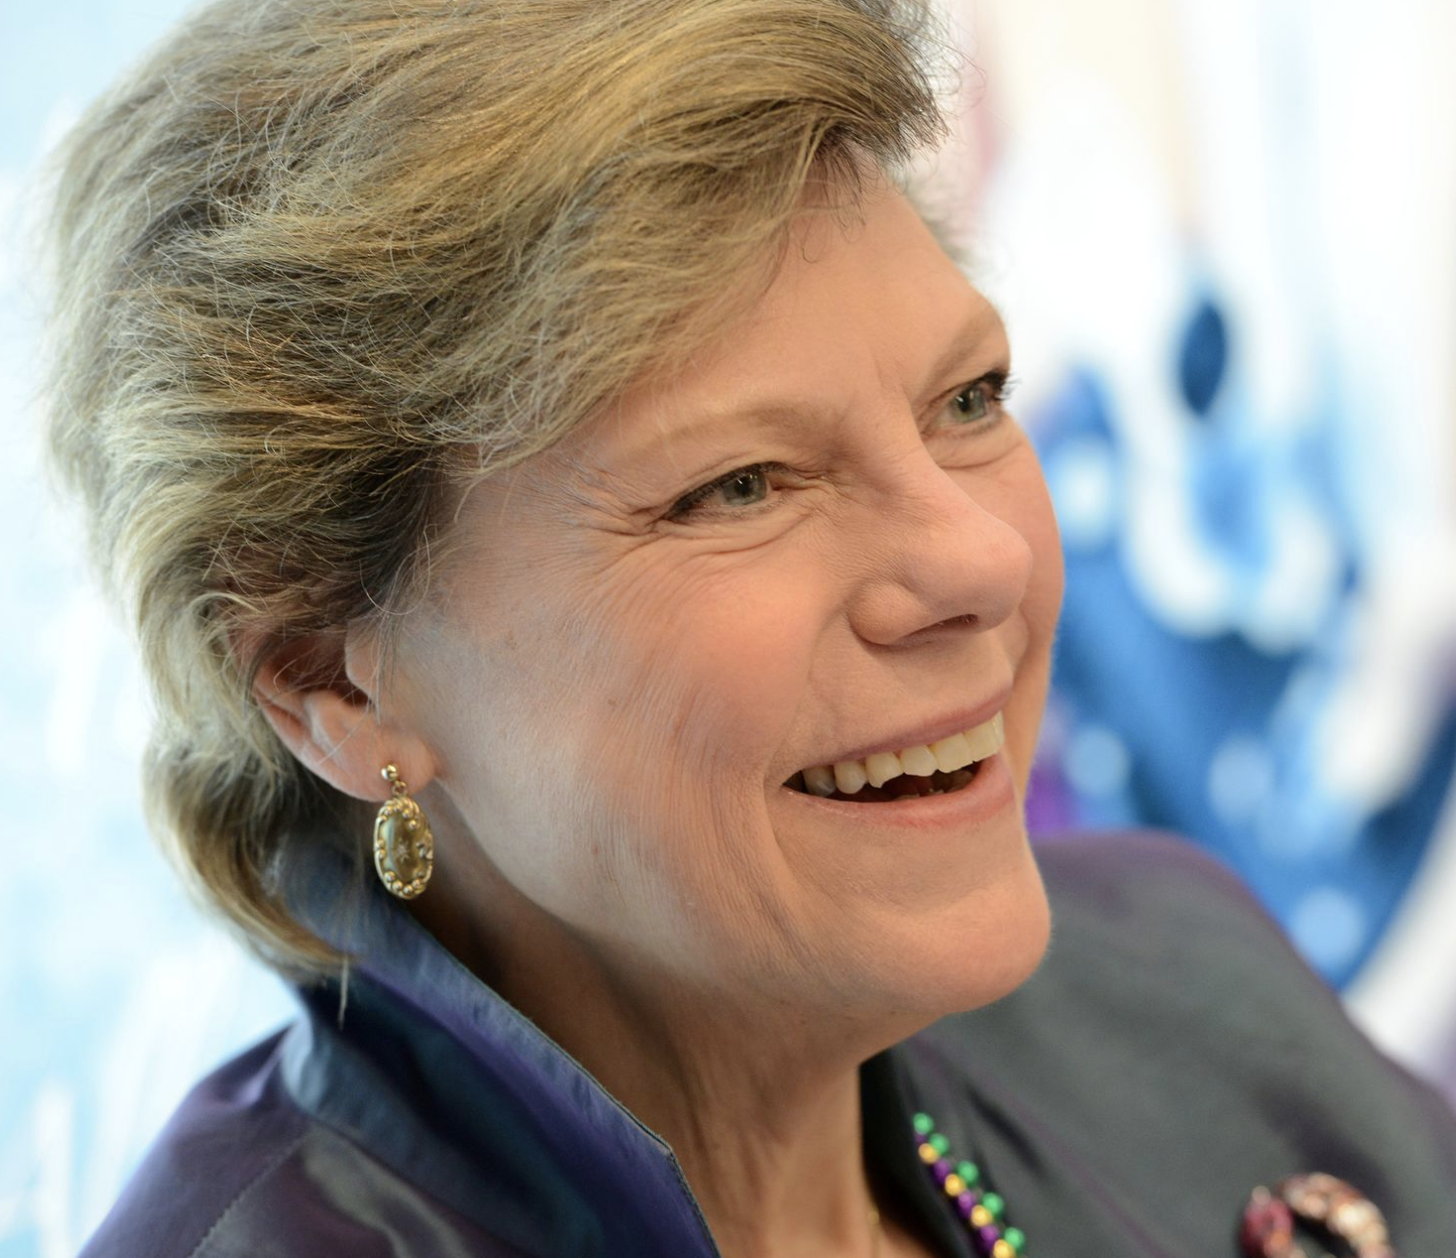 Linda Wertheimer and Nina Totenberg on friend and colleague Cokie Roberts